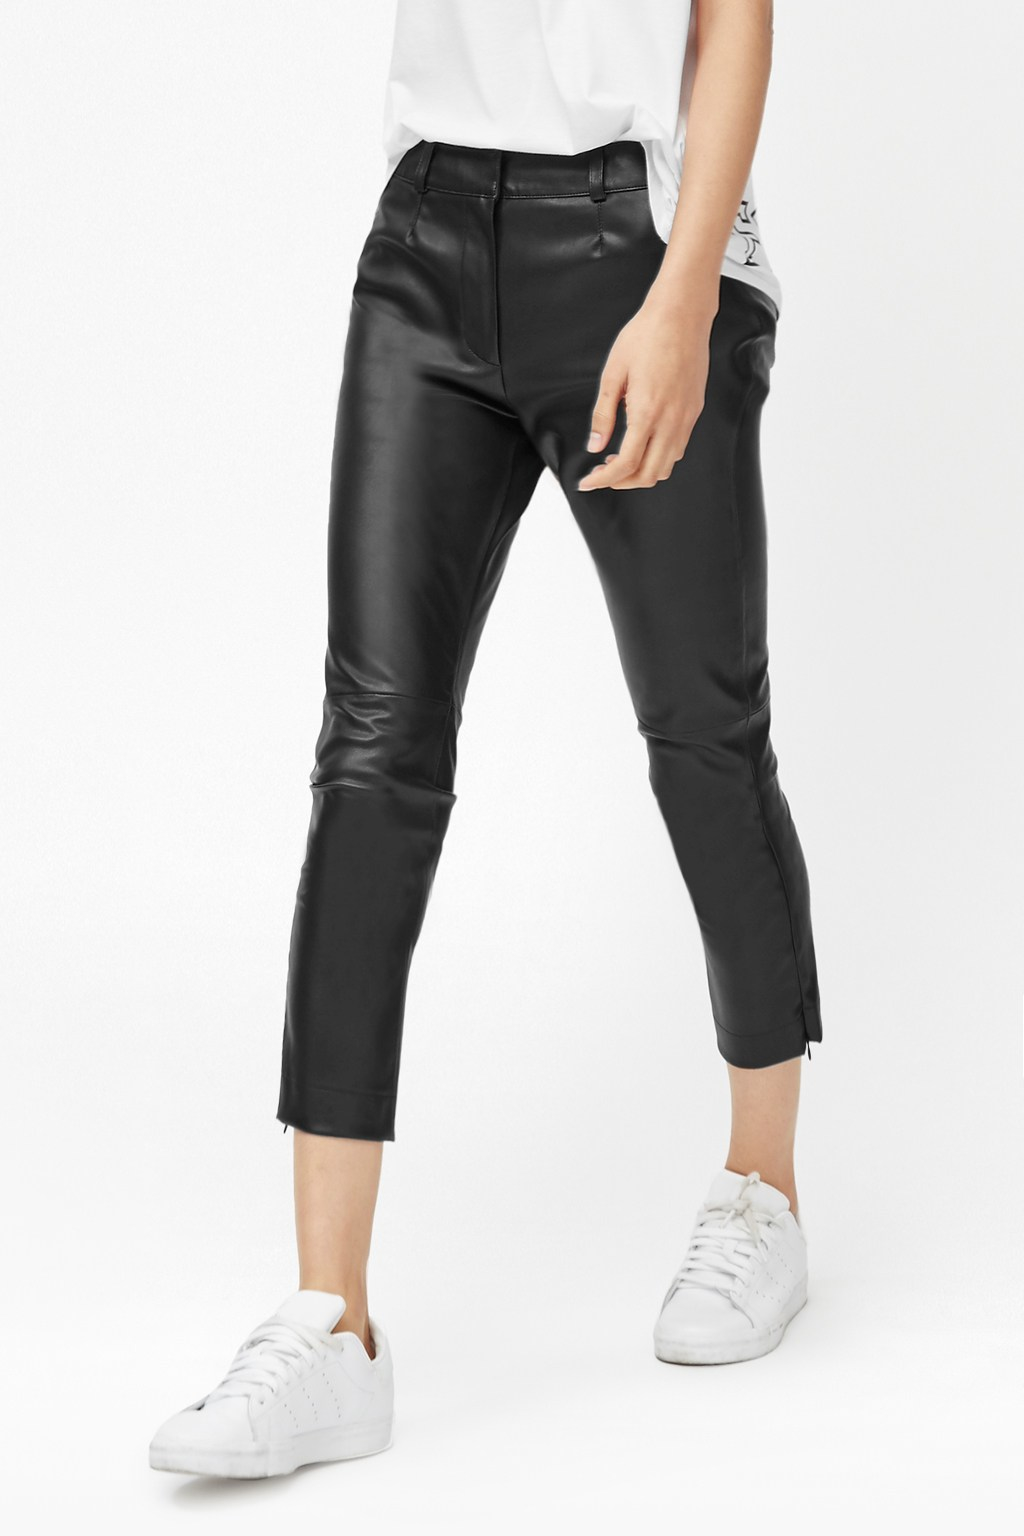 5b185276fb3 Gallery. Women's Black Leather Trousers Women's Faux Leather Trousers